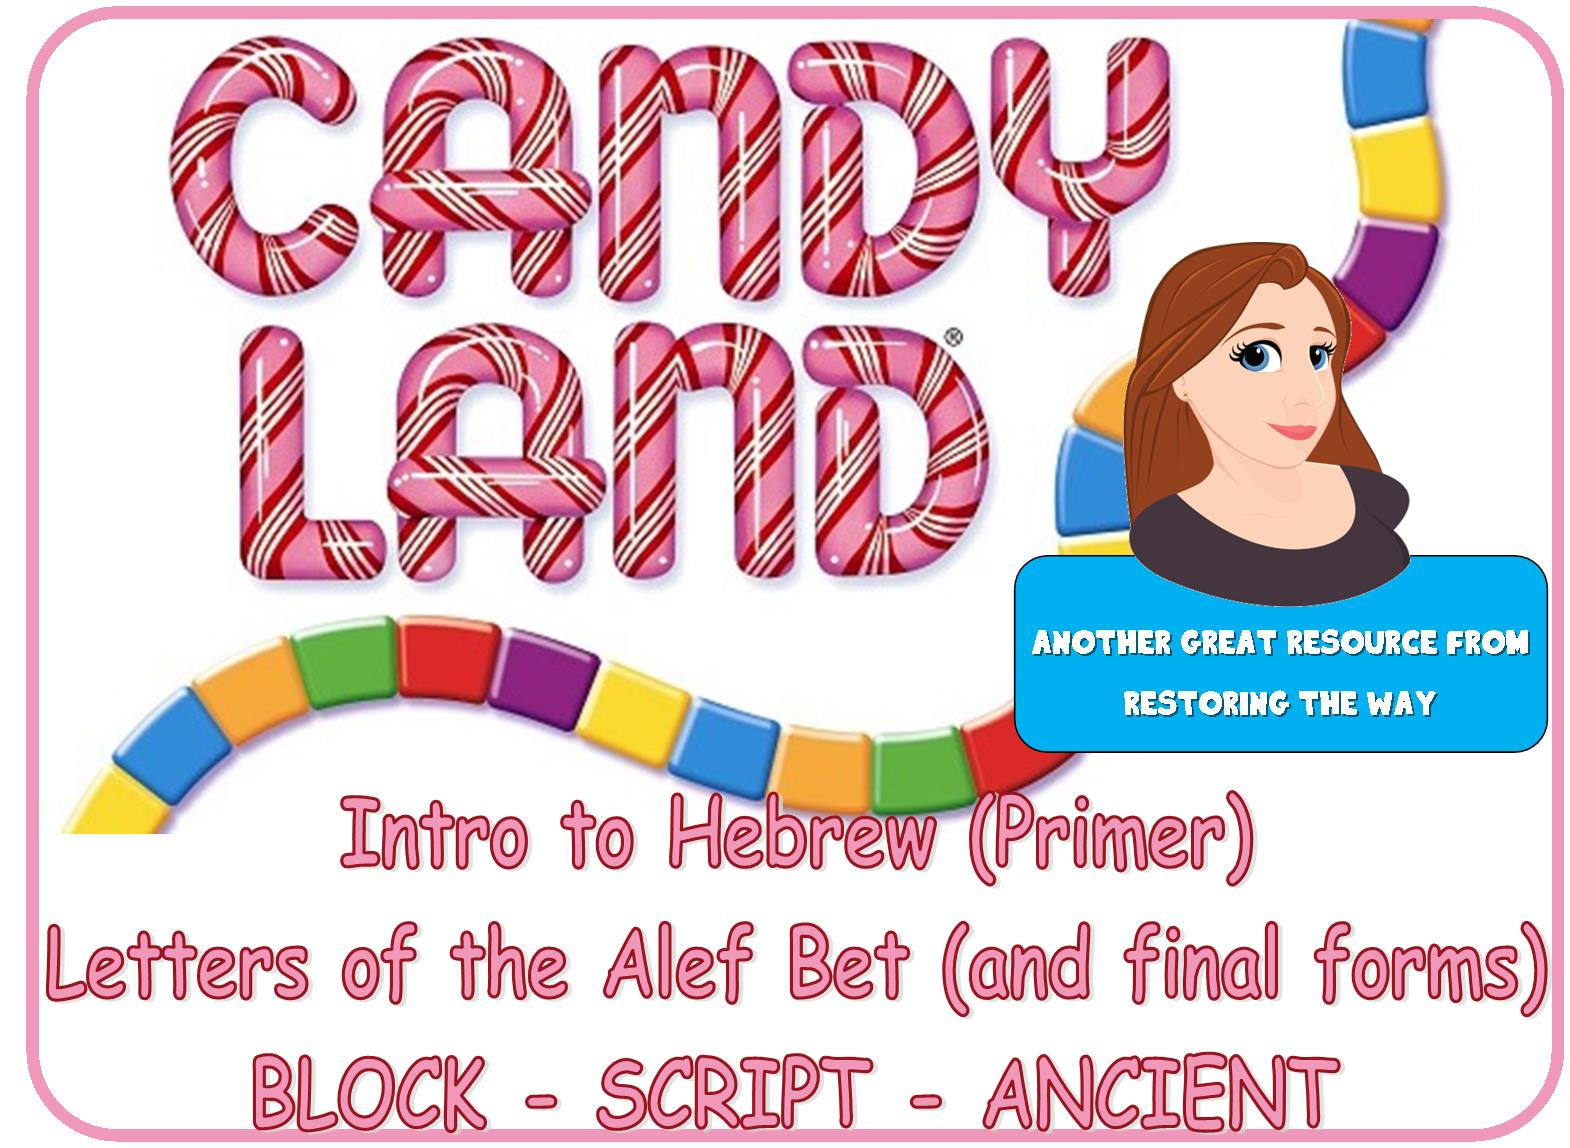 picture about Candyland Letters Printable identified as Sweet LAND Structure Activity for Hebrew Alphabet Evaluate(block, script, and paleo)